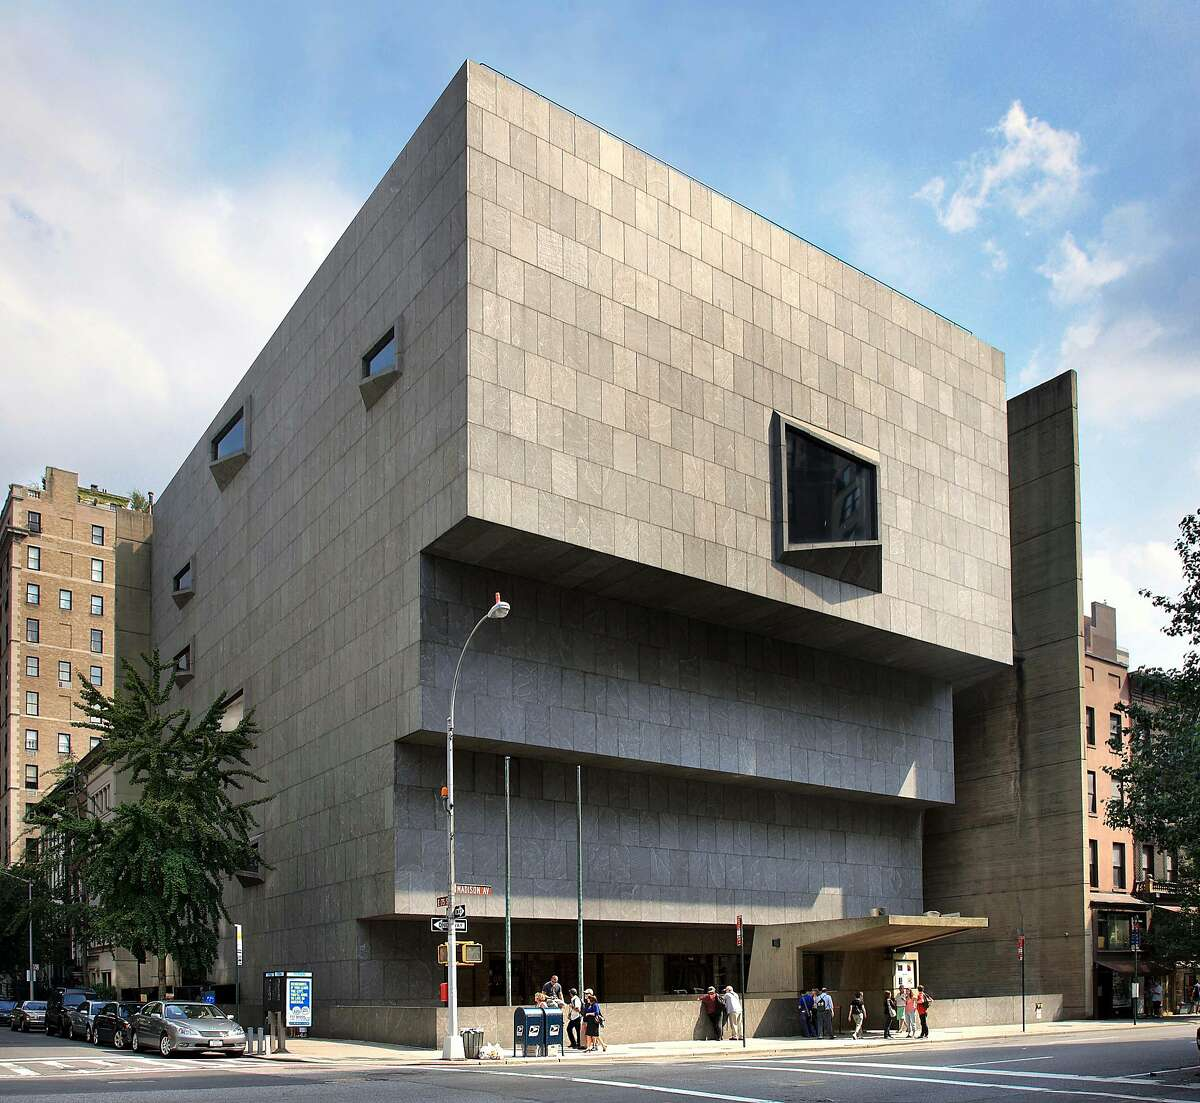 The Met Breuer, a $15 million renovation of the former Whitney Museum